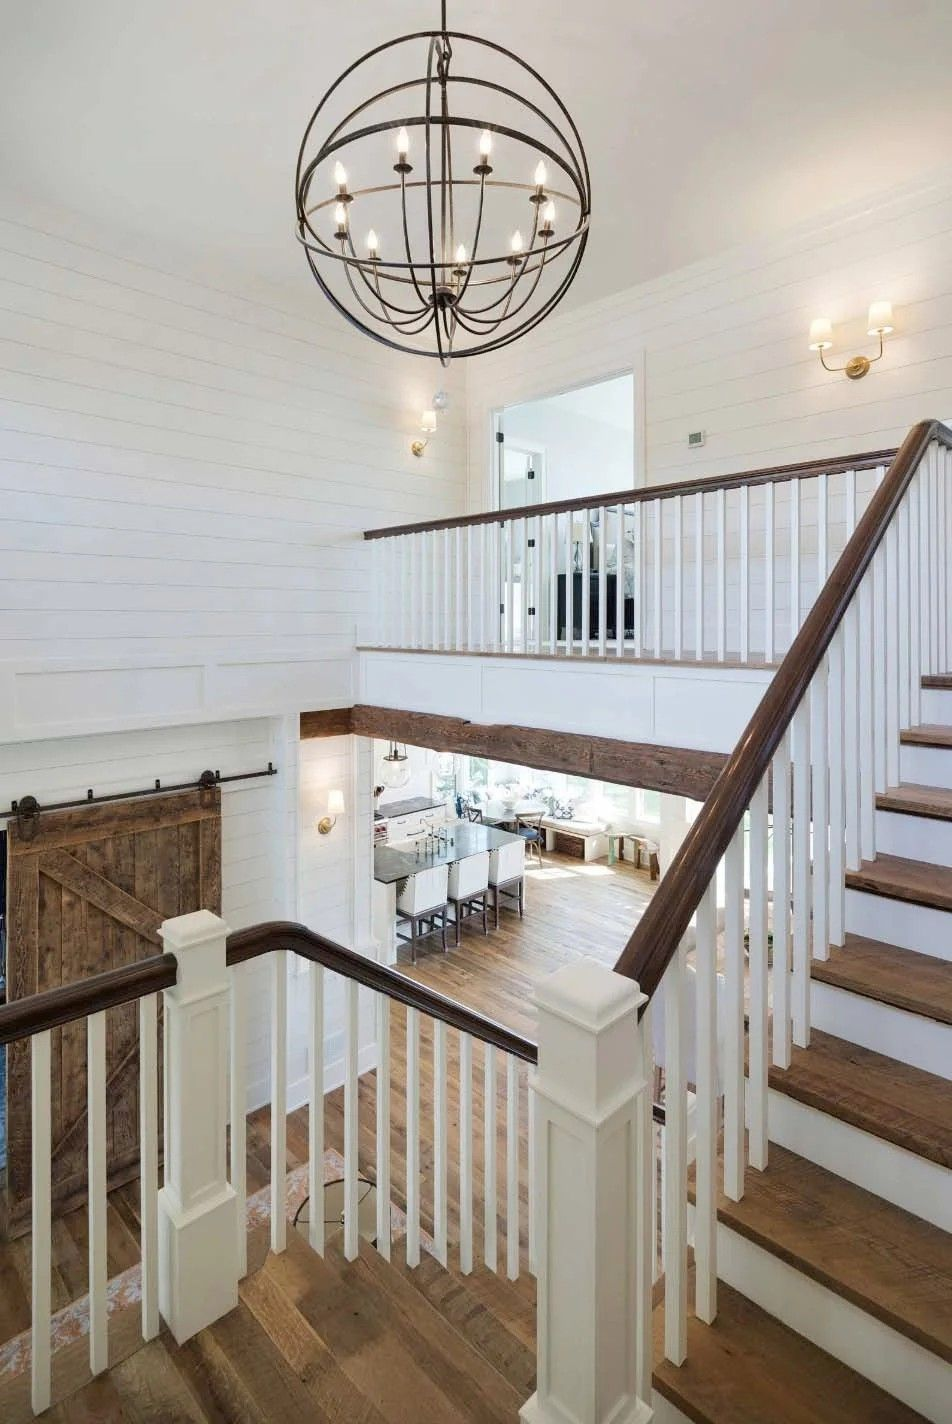 Love This Staircase And Entryway With Pendant Light Chandelier